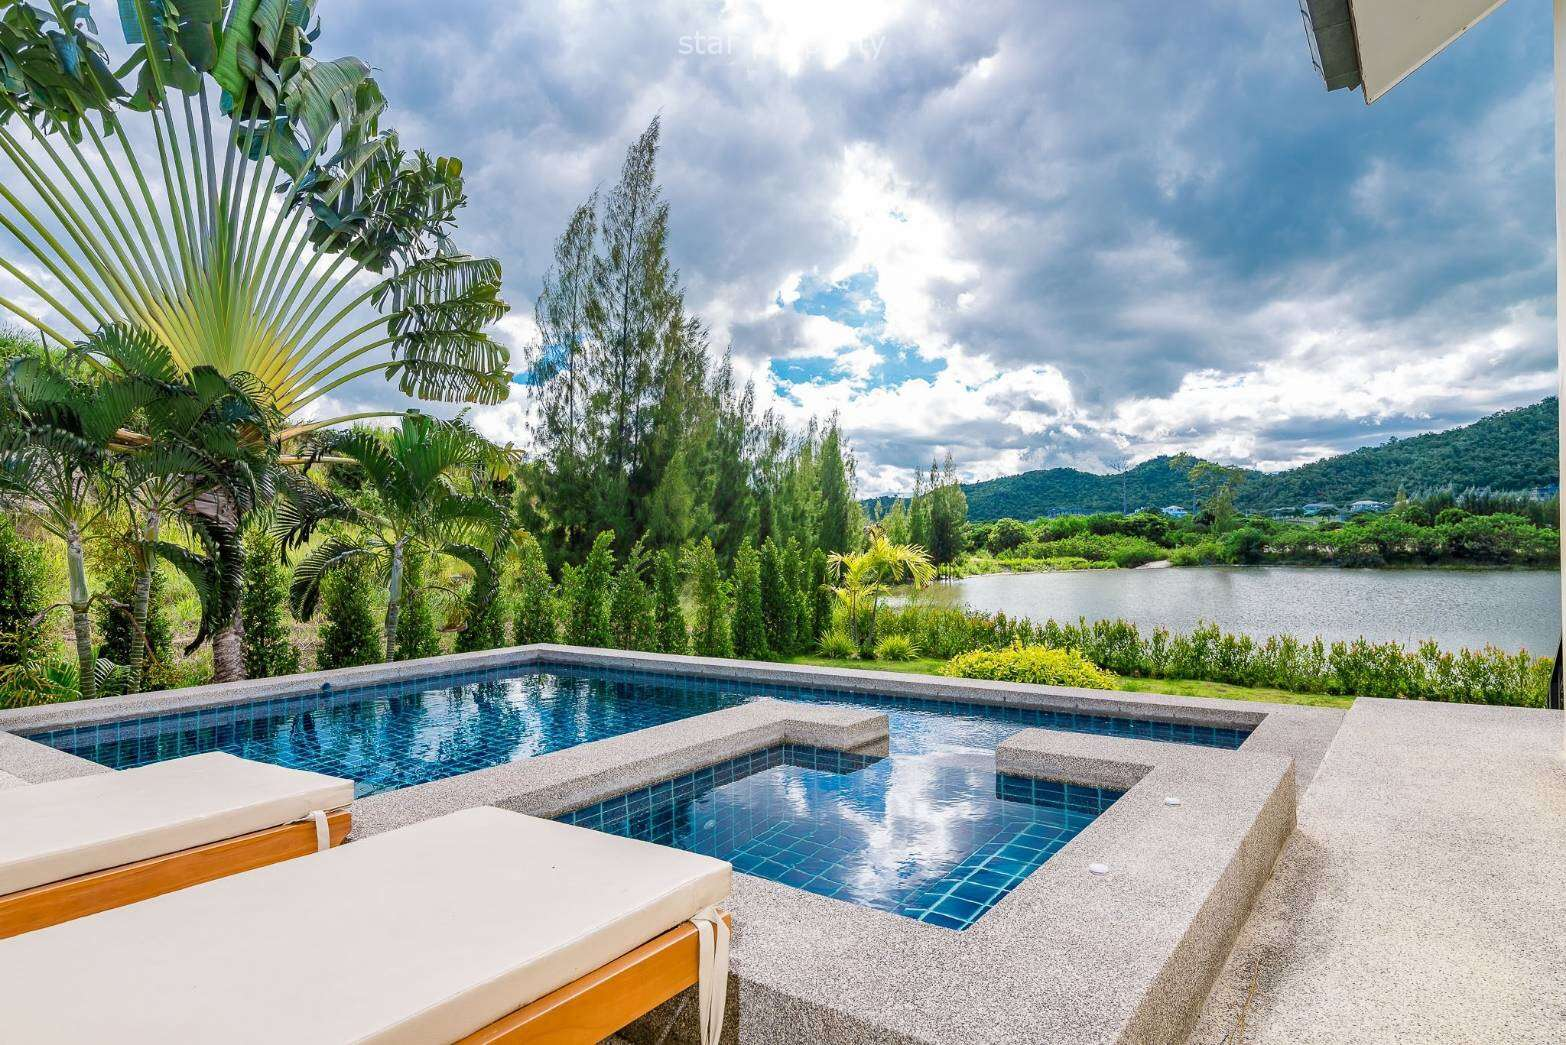 5 Bedroom Pool Villa with Stunning Mountain View for Sale at Hua Hin District, Prachuap Khiri Khan, Thailand